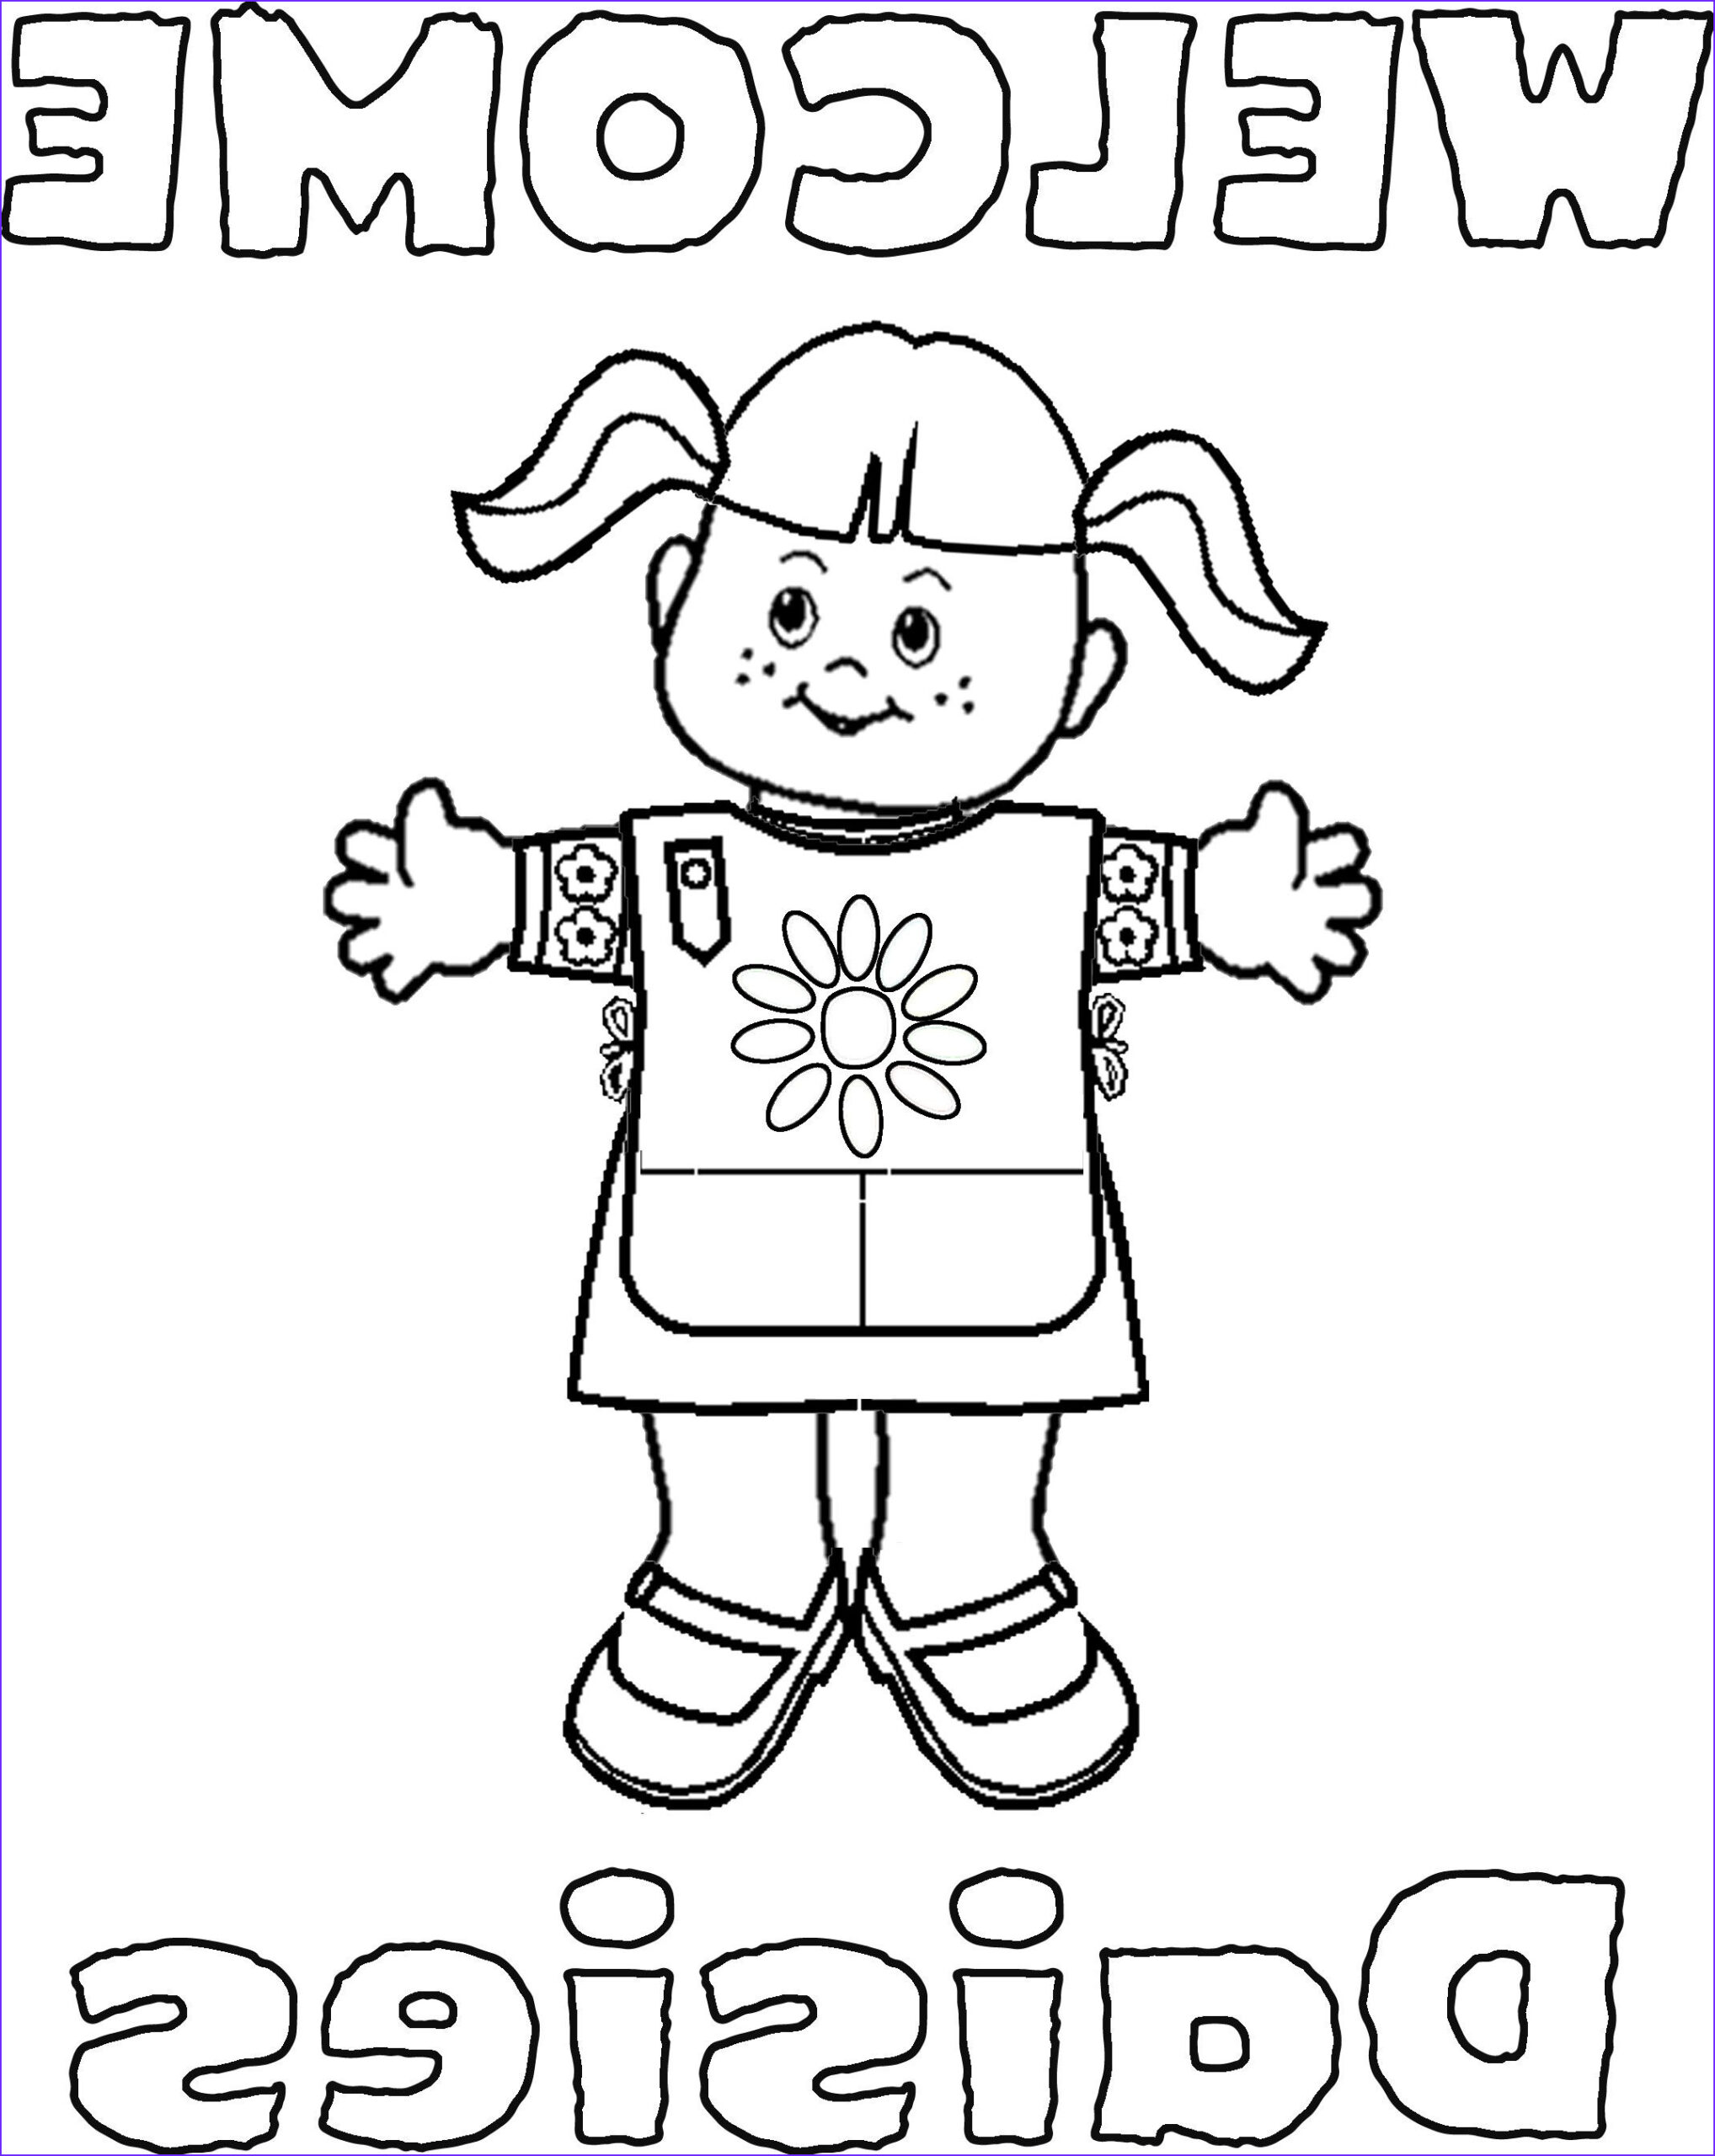 Brownie Girl Scout Coloring Pages Unique Stock Daisy Girl Scout Coloring Pages Daisys